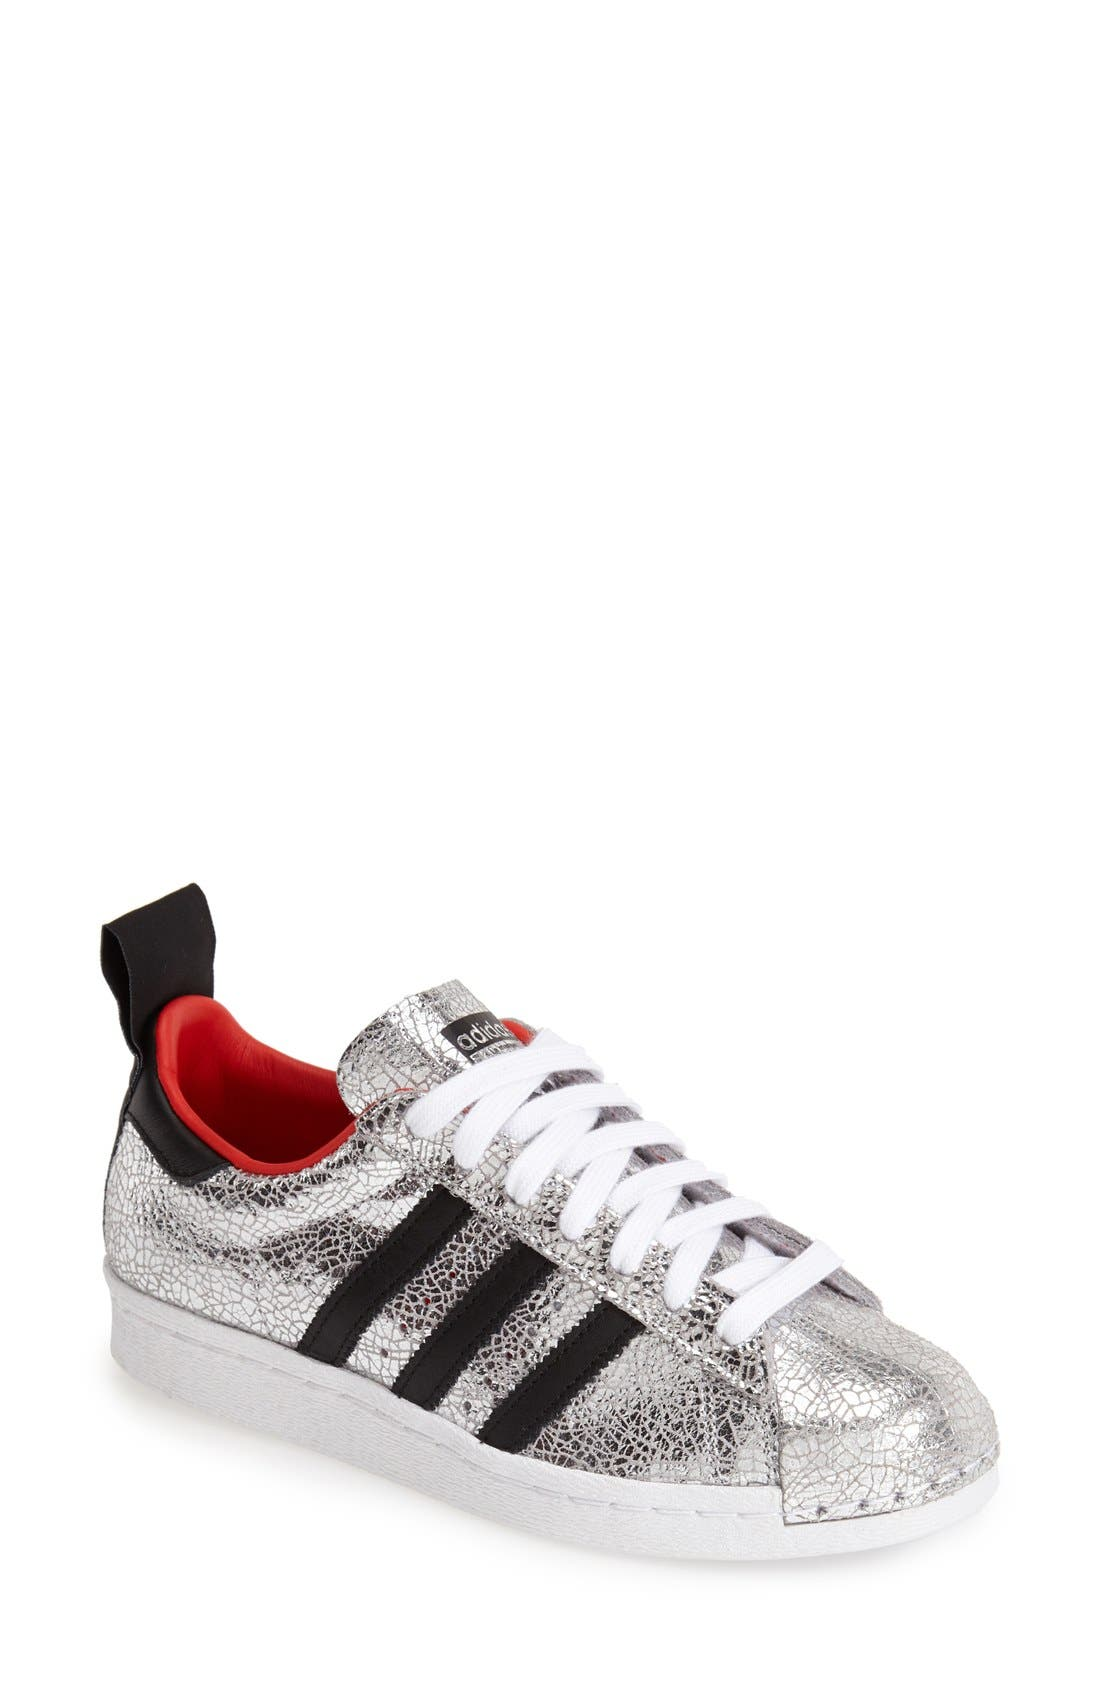 Main Image - Topshop for adidas Originals '80s Premium Superstar' Sneaker (Women)